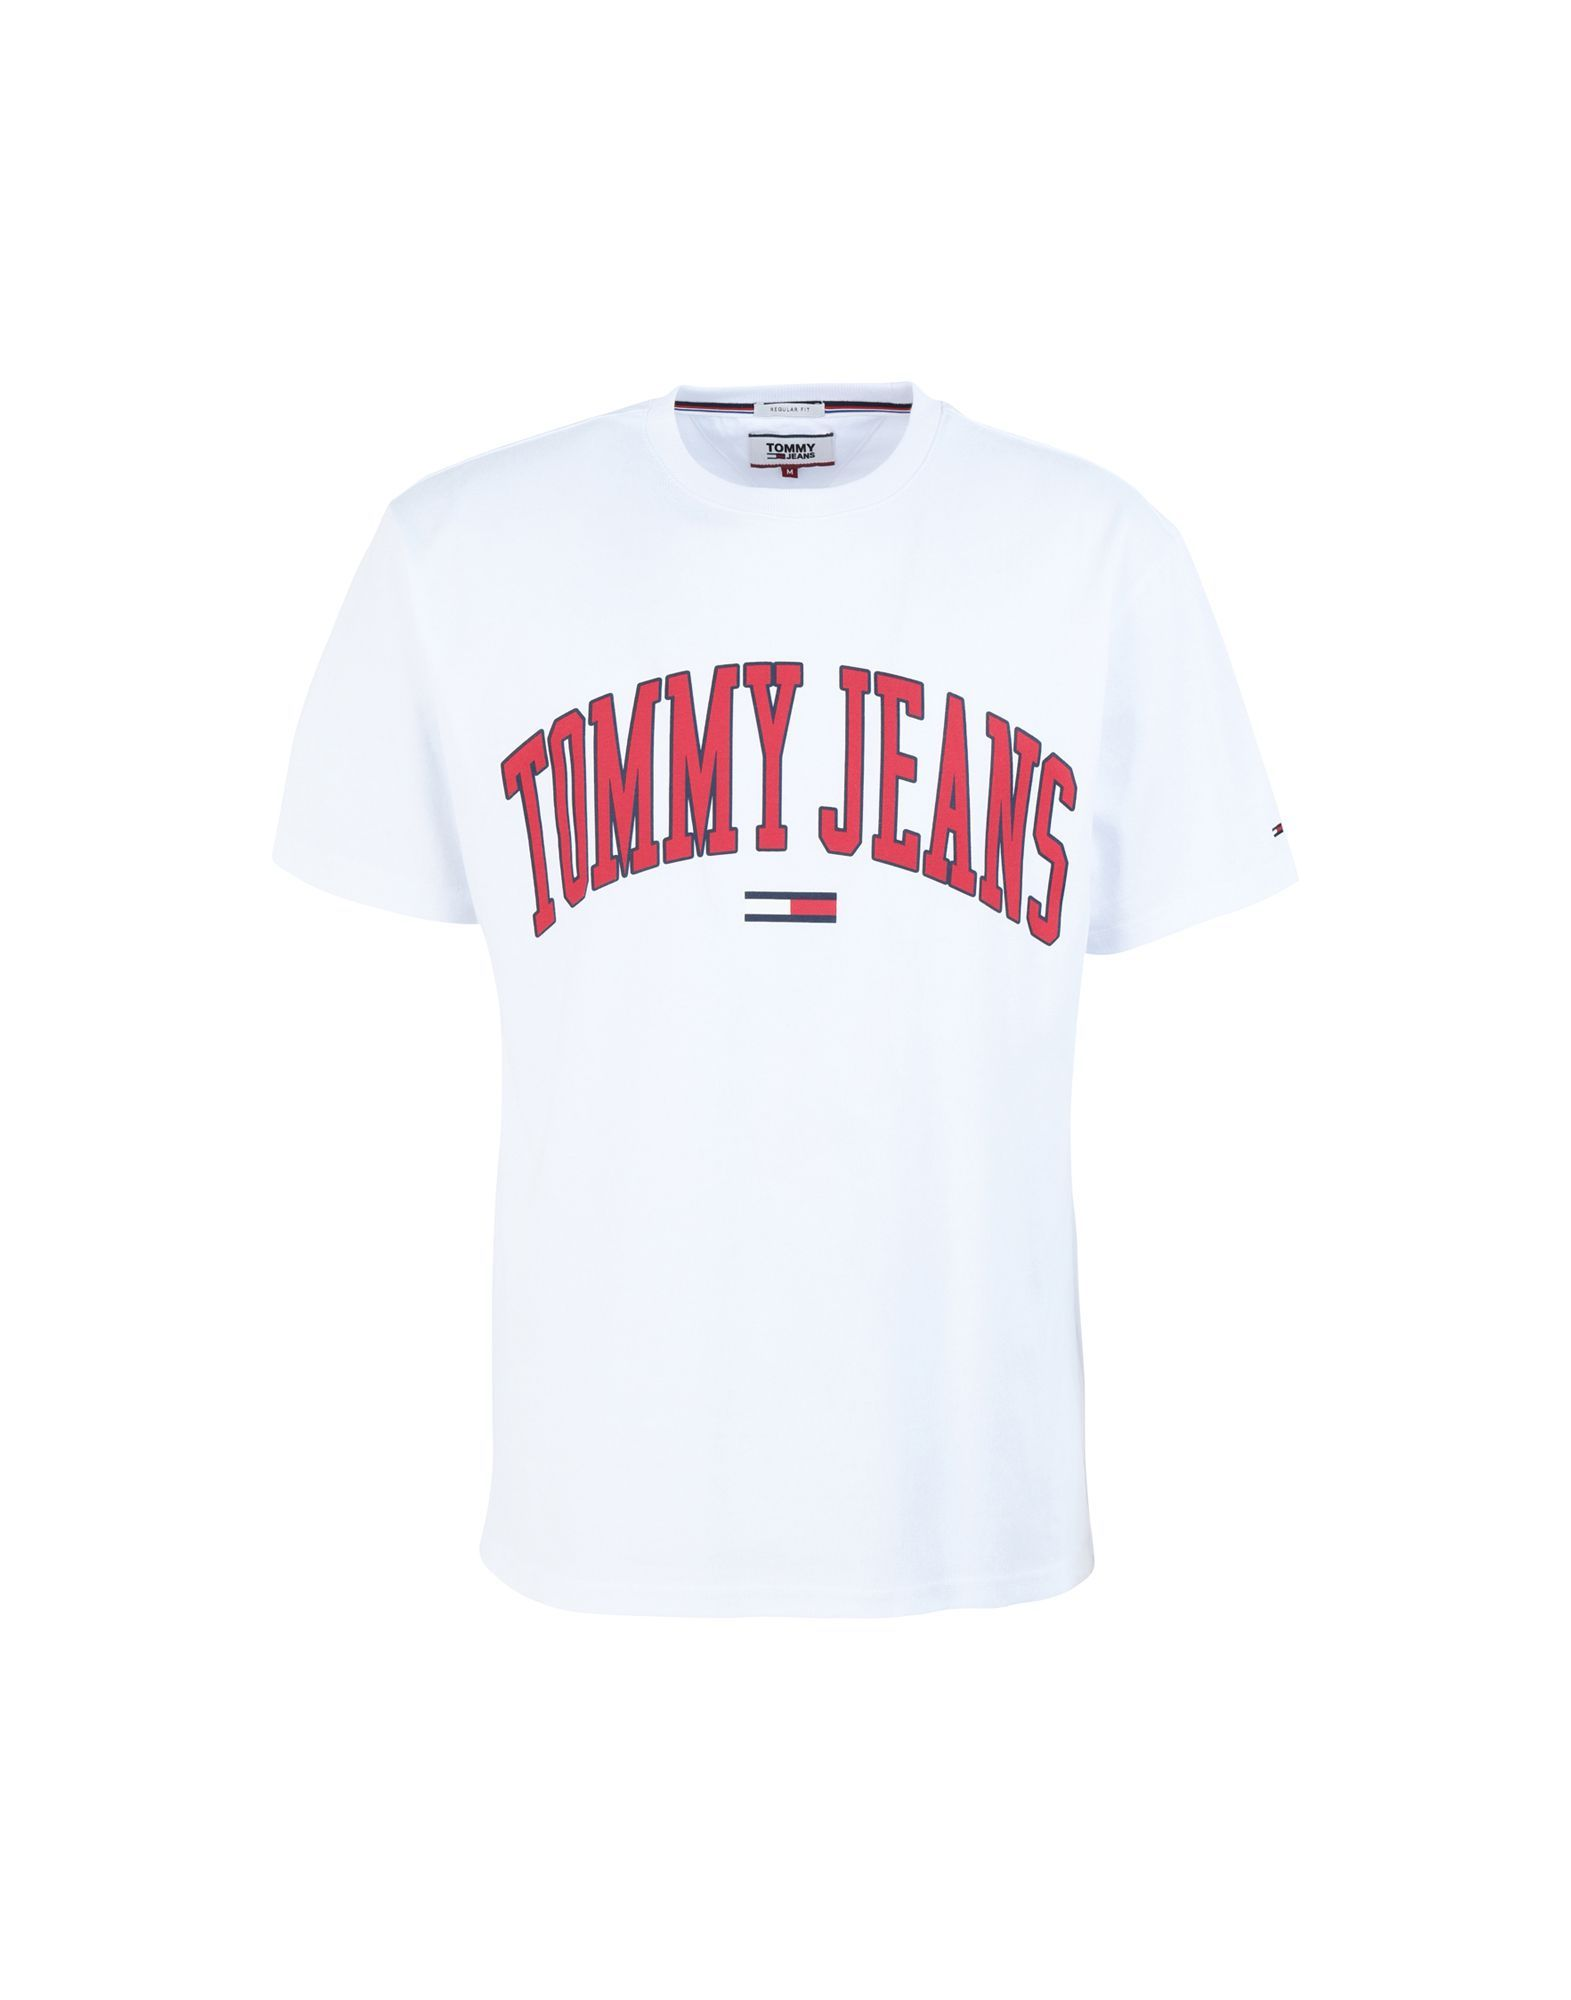 82bf2e23 Tommy Jeans printed logo T-shirt in 2019 | Products | Print logo, T shirt,  Shirts